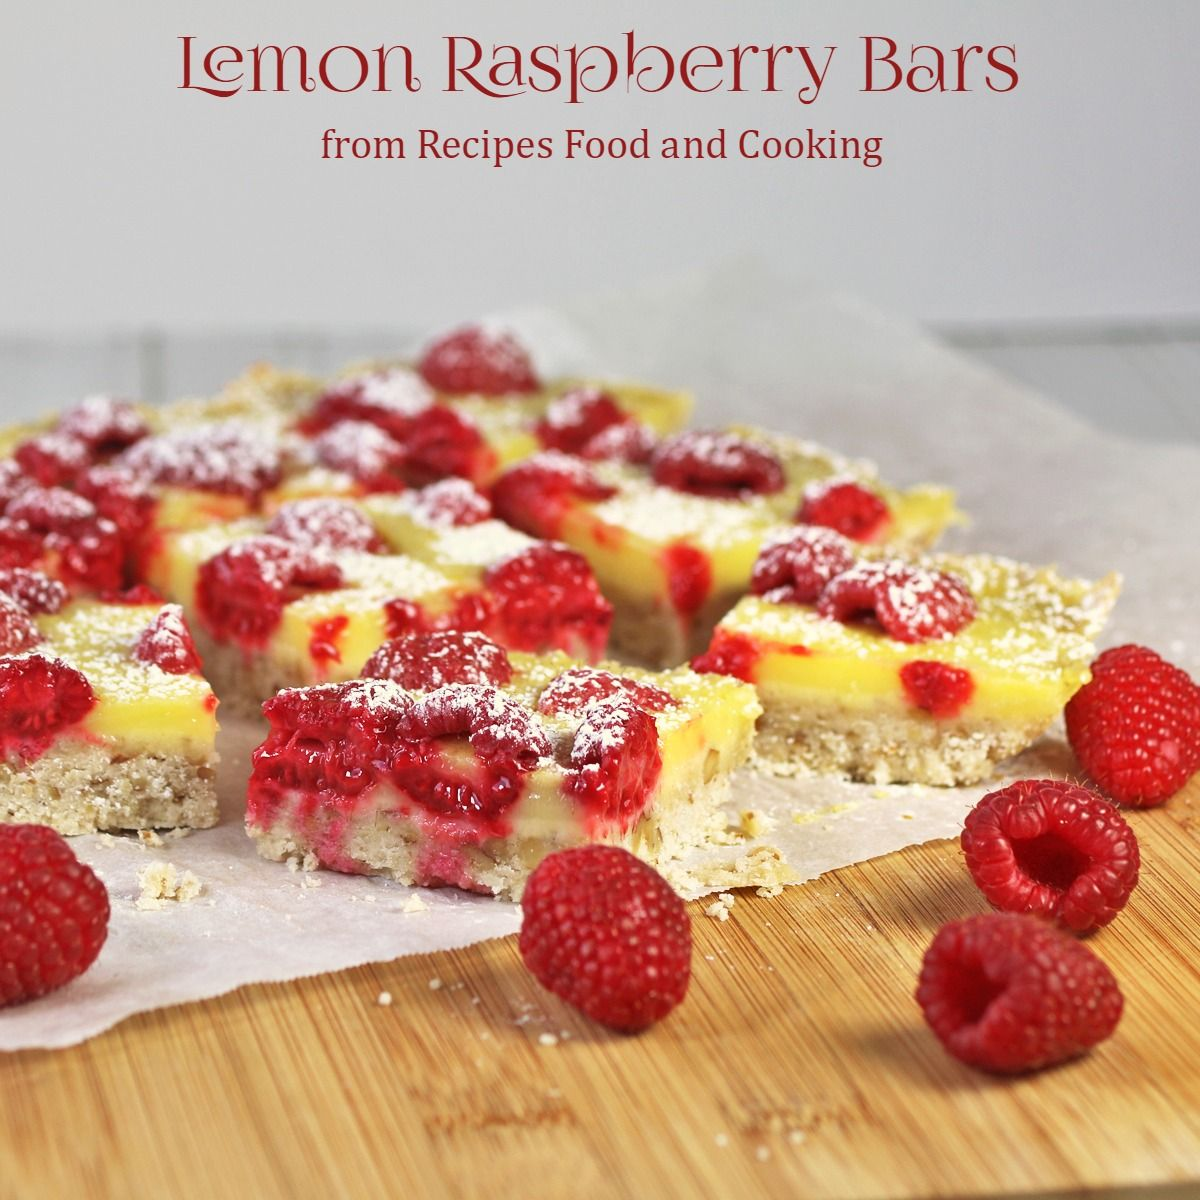 ab013500f860a839a52beb0a4b5f84fc - Raspberry Bars Better Homes And Gardens